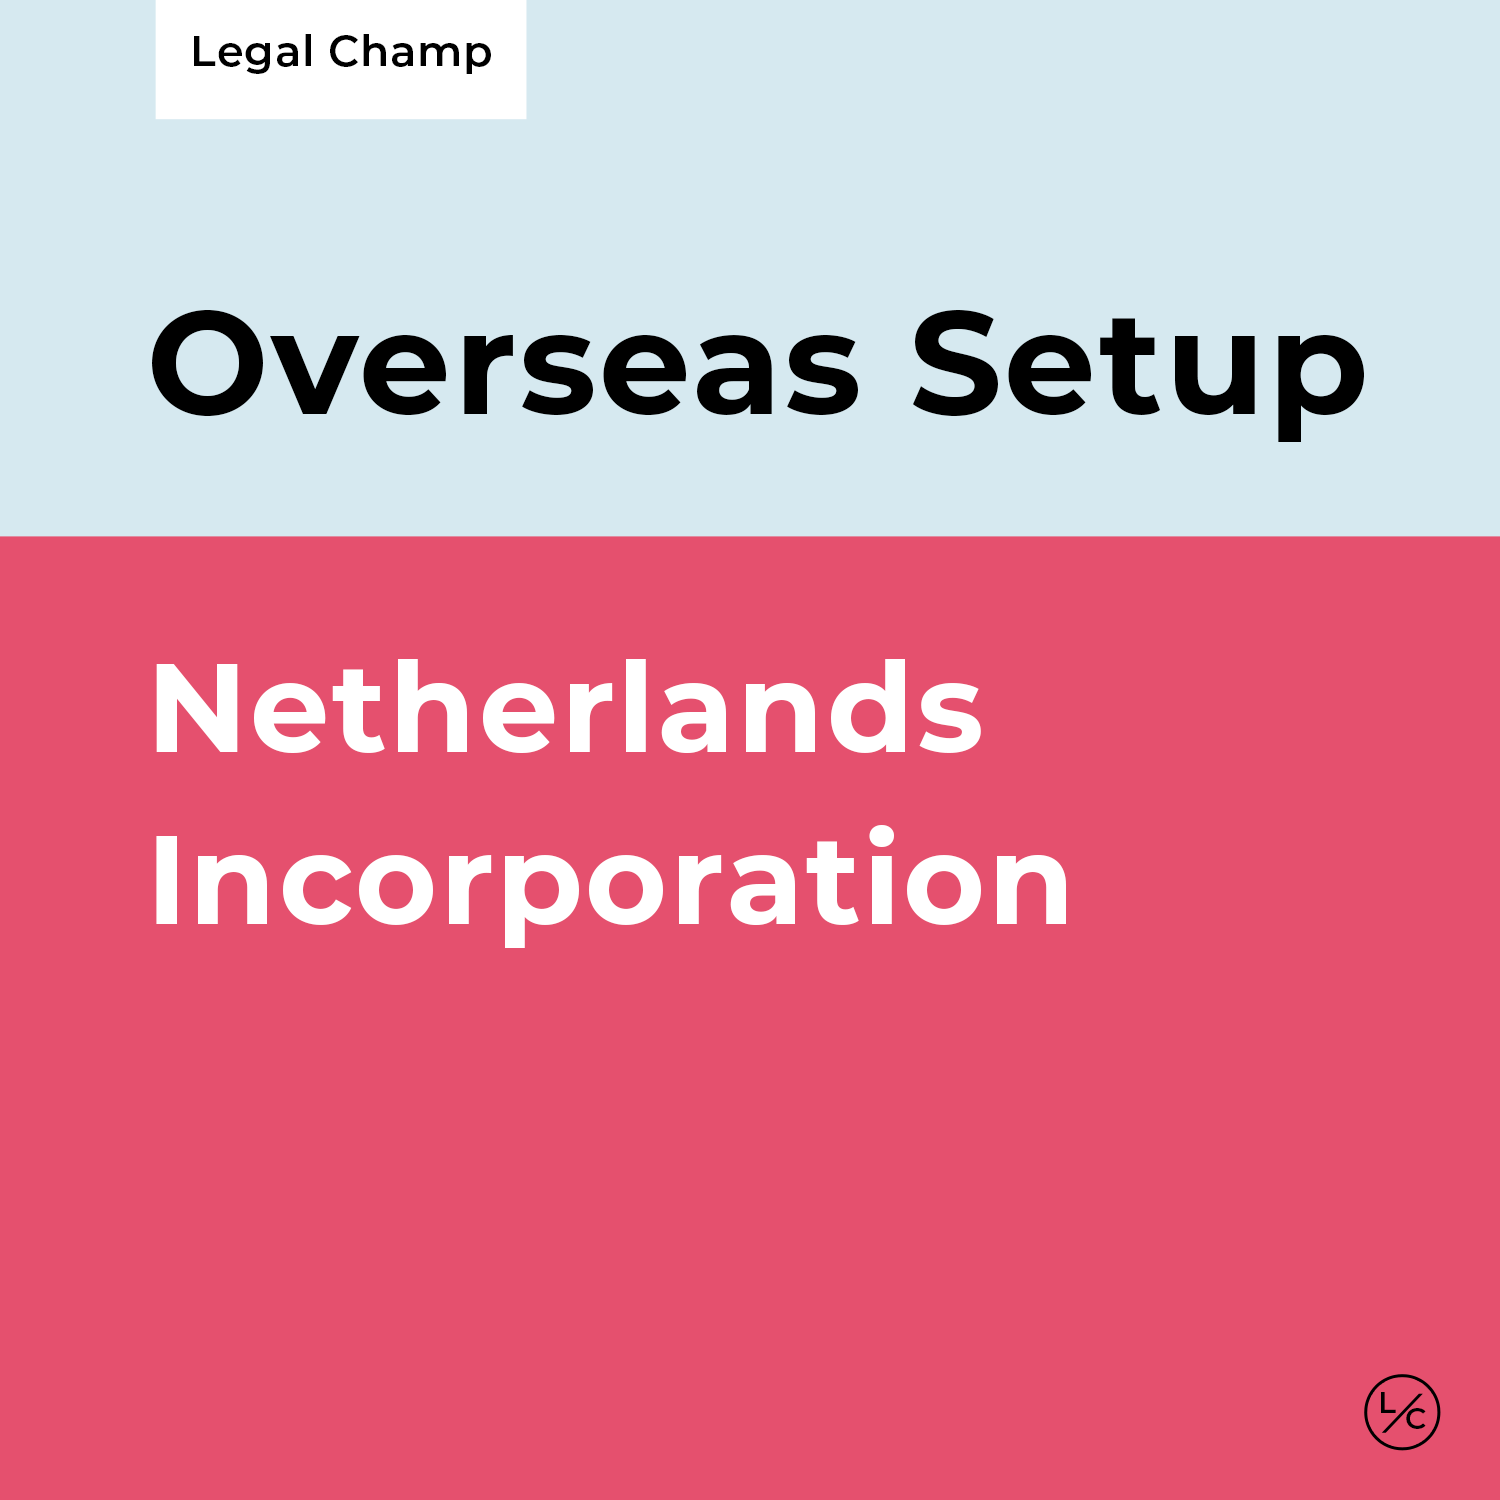 Netherlands Incorporation